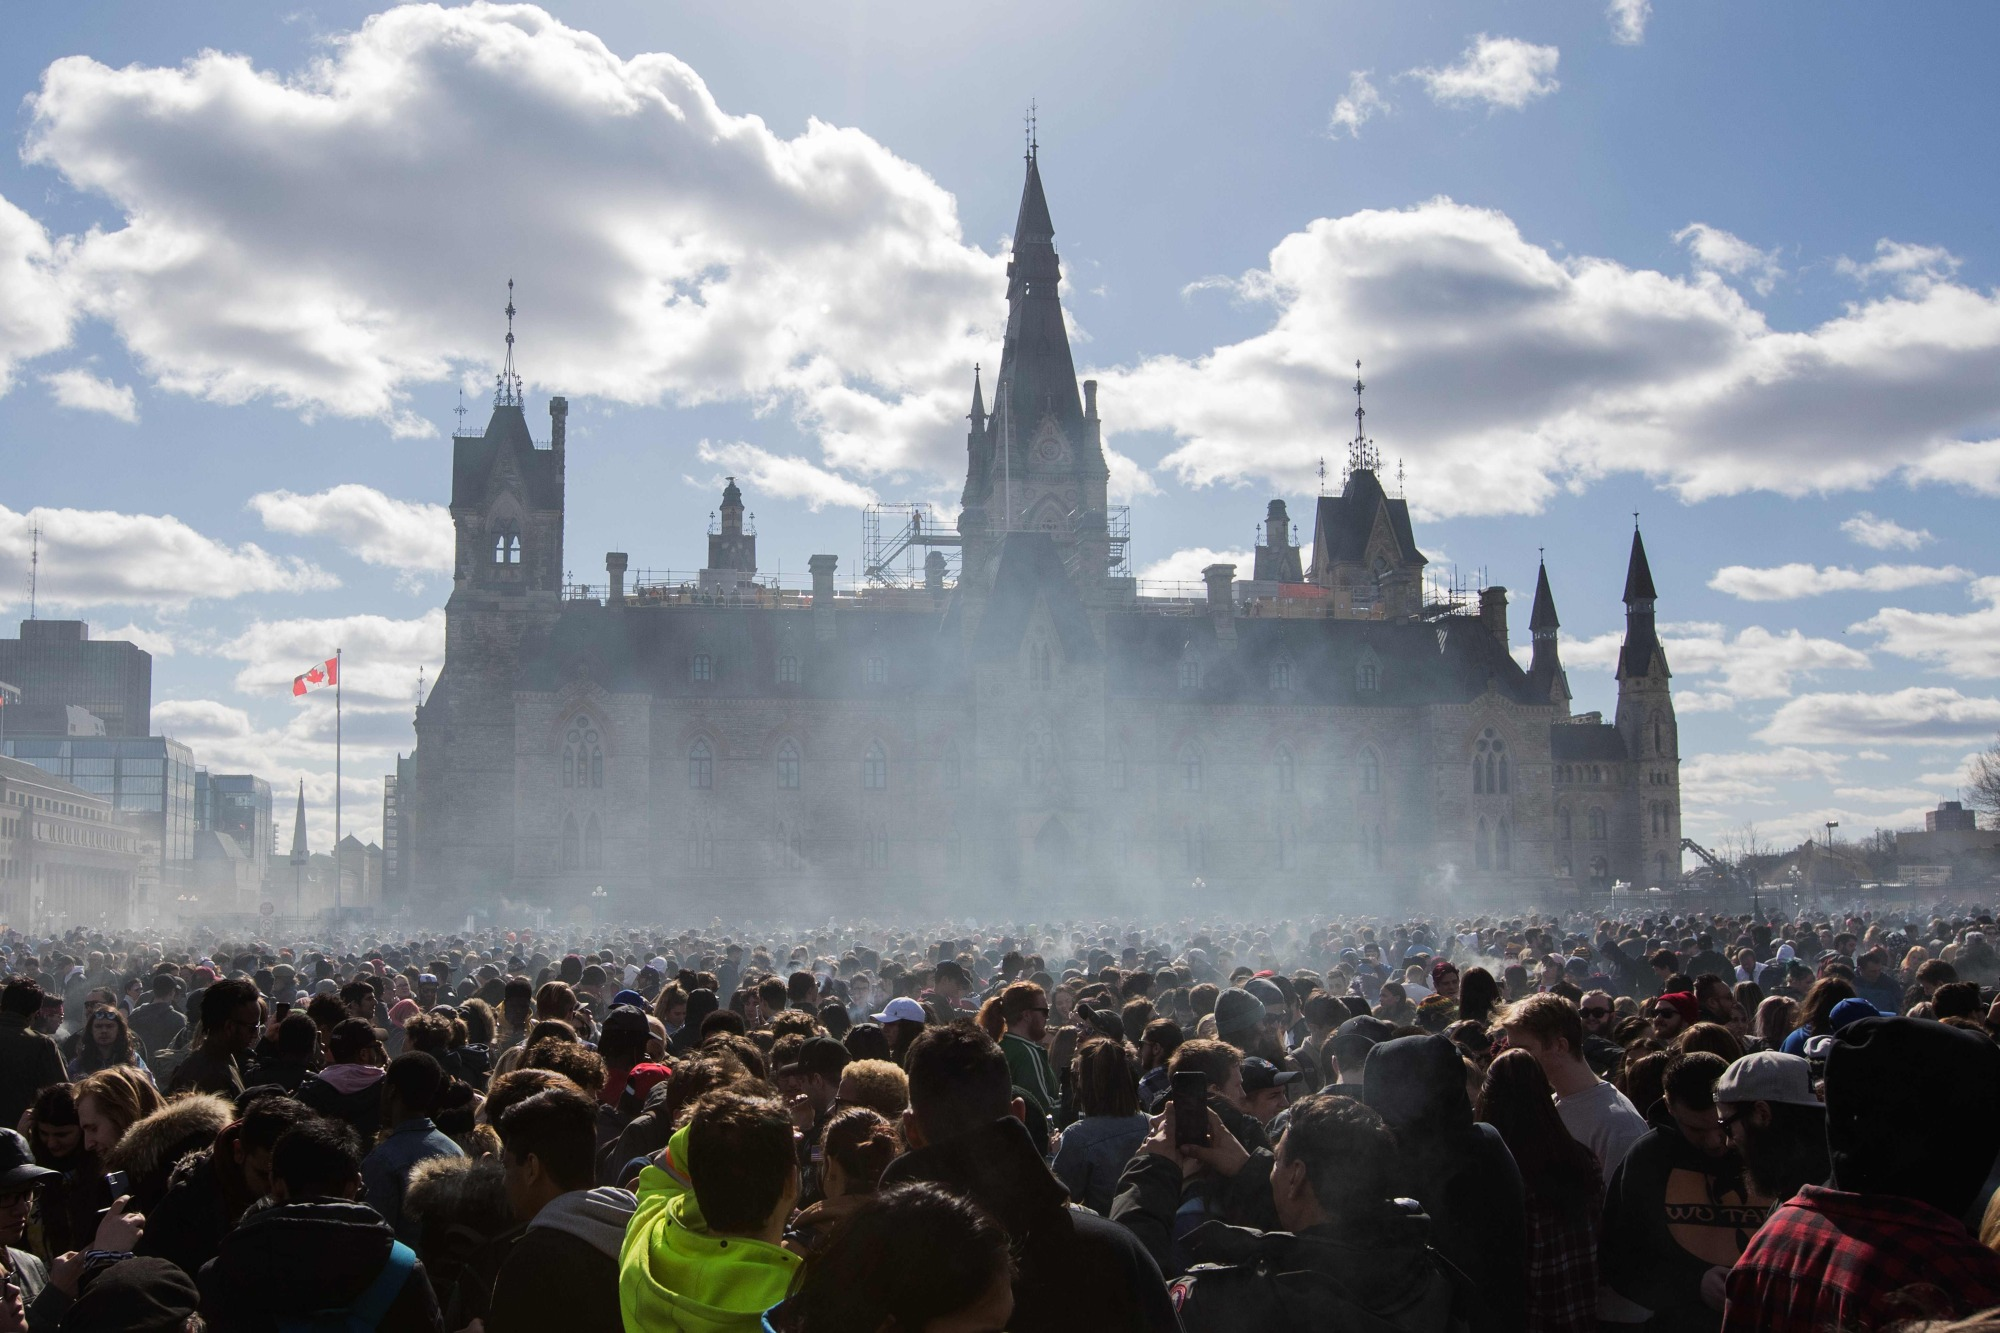 Smoke lingers over Parliament Hill as people smoke marijuana during the annual 4/20 rally on Parliament Hill in Ottawa in April. Canada's top medical journal warned on Monday that the imminent legalization of cannabis for recreation use poses a major health concern despite broad support for ending the prohibition. Diane Kelsall, editor in chief of the Canadian Medical Association Journal, called the Wednesday launch 'a national, uncontrolled experiment in which the profits of cannabis producers and tax revenues are squarely pitched against the health of Canadians.' | AFP-JIJI